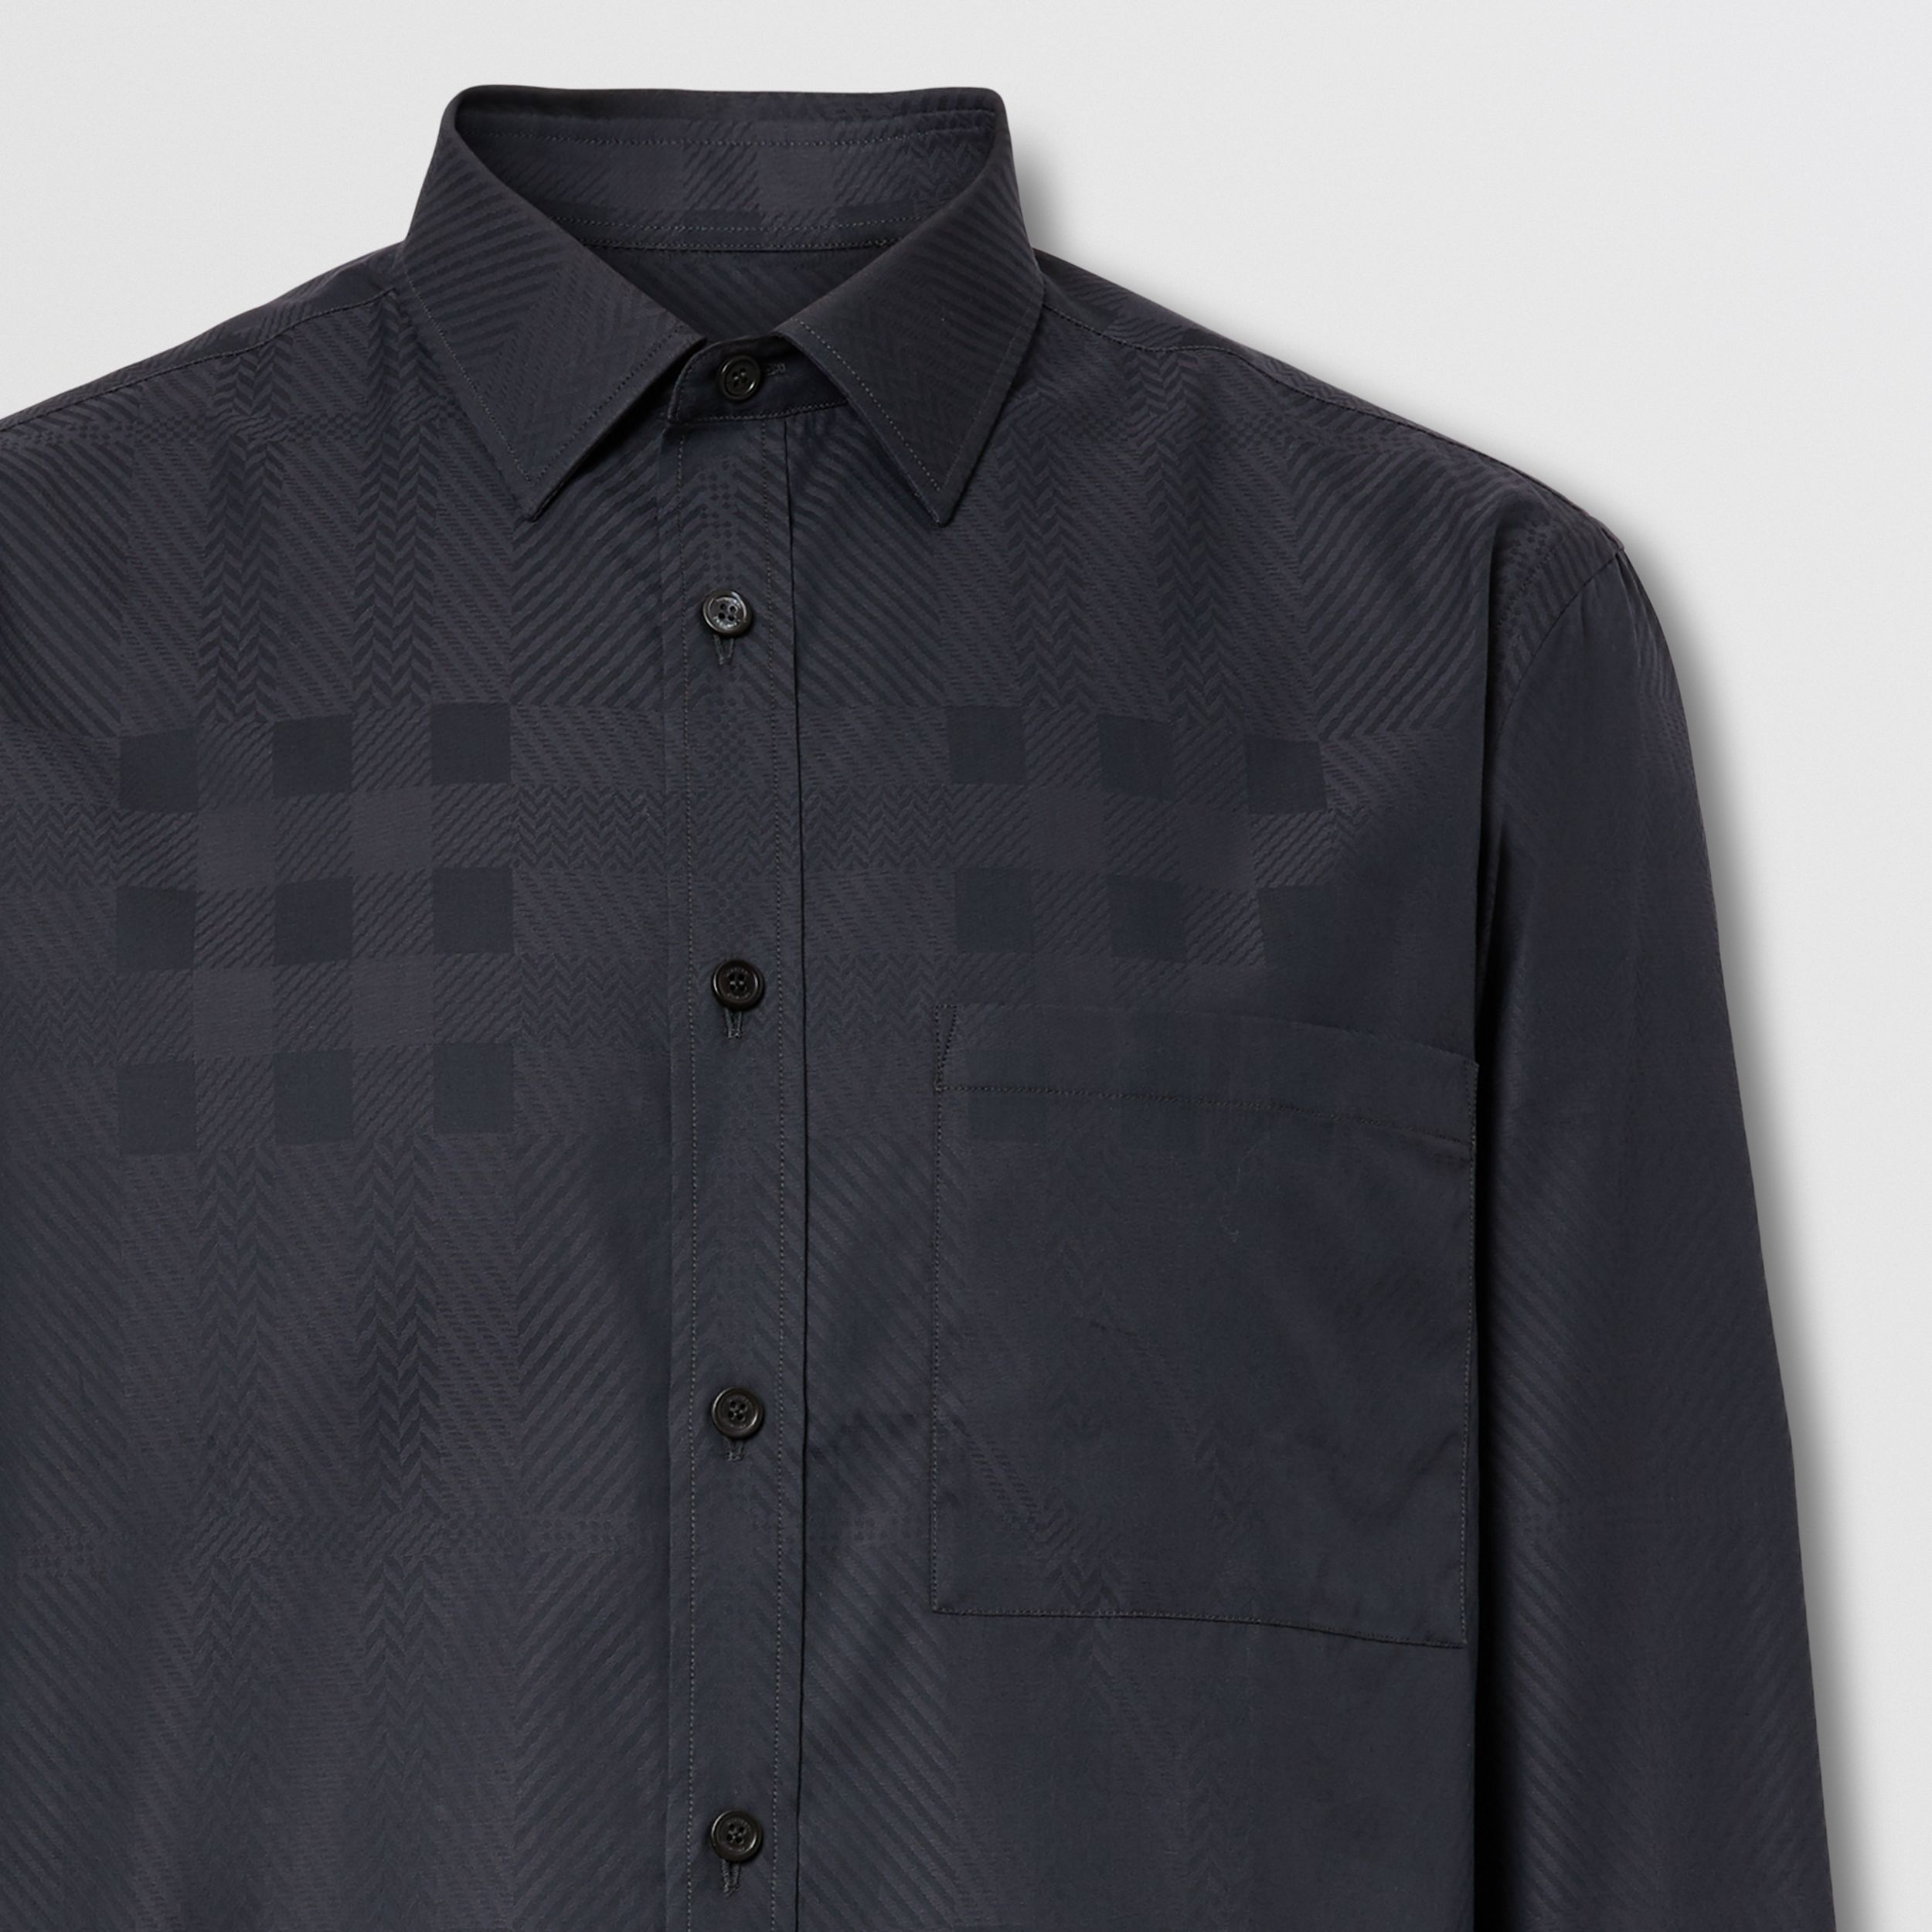 Slim Fit Check Cotton Jacquard Shirt in Charcoal - Men | Burberry - 2